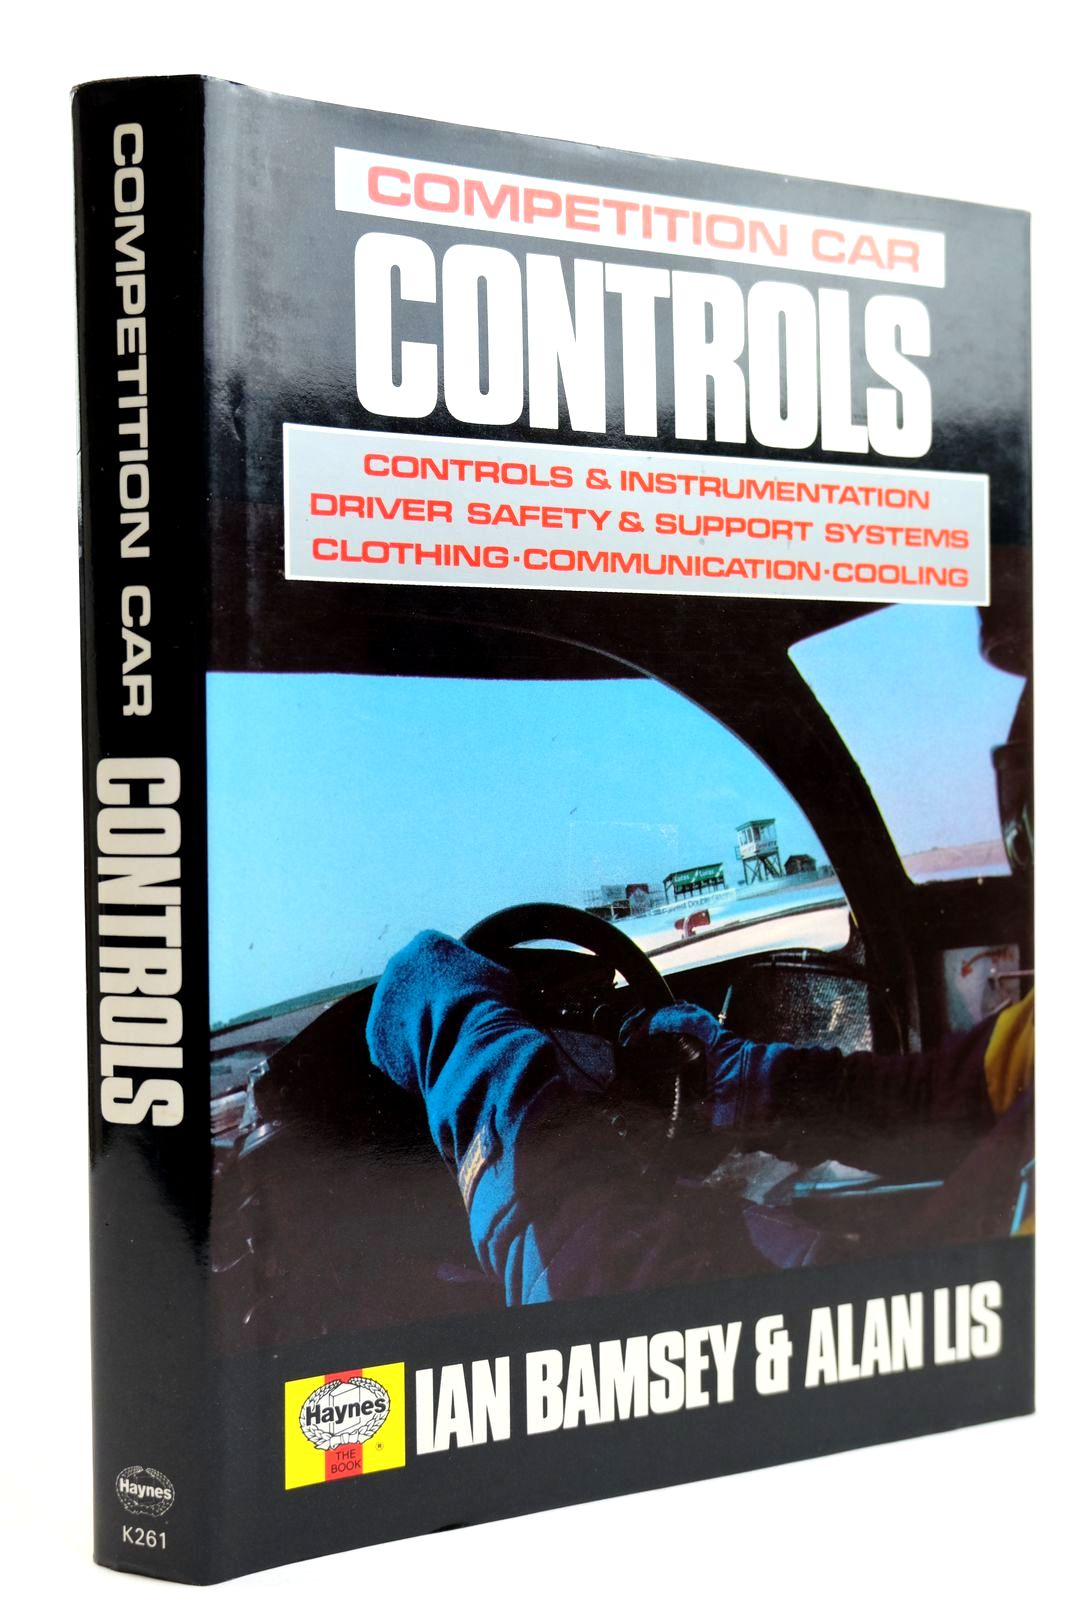 Photo of COMPETITION CAR CONTROLS written by Bamsey, Ian Lis, Alan published by Foulis, Haynes Publishing Group (STOCK CODE: 2131867)  for sale by Stella & Rose's Books